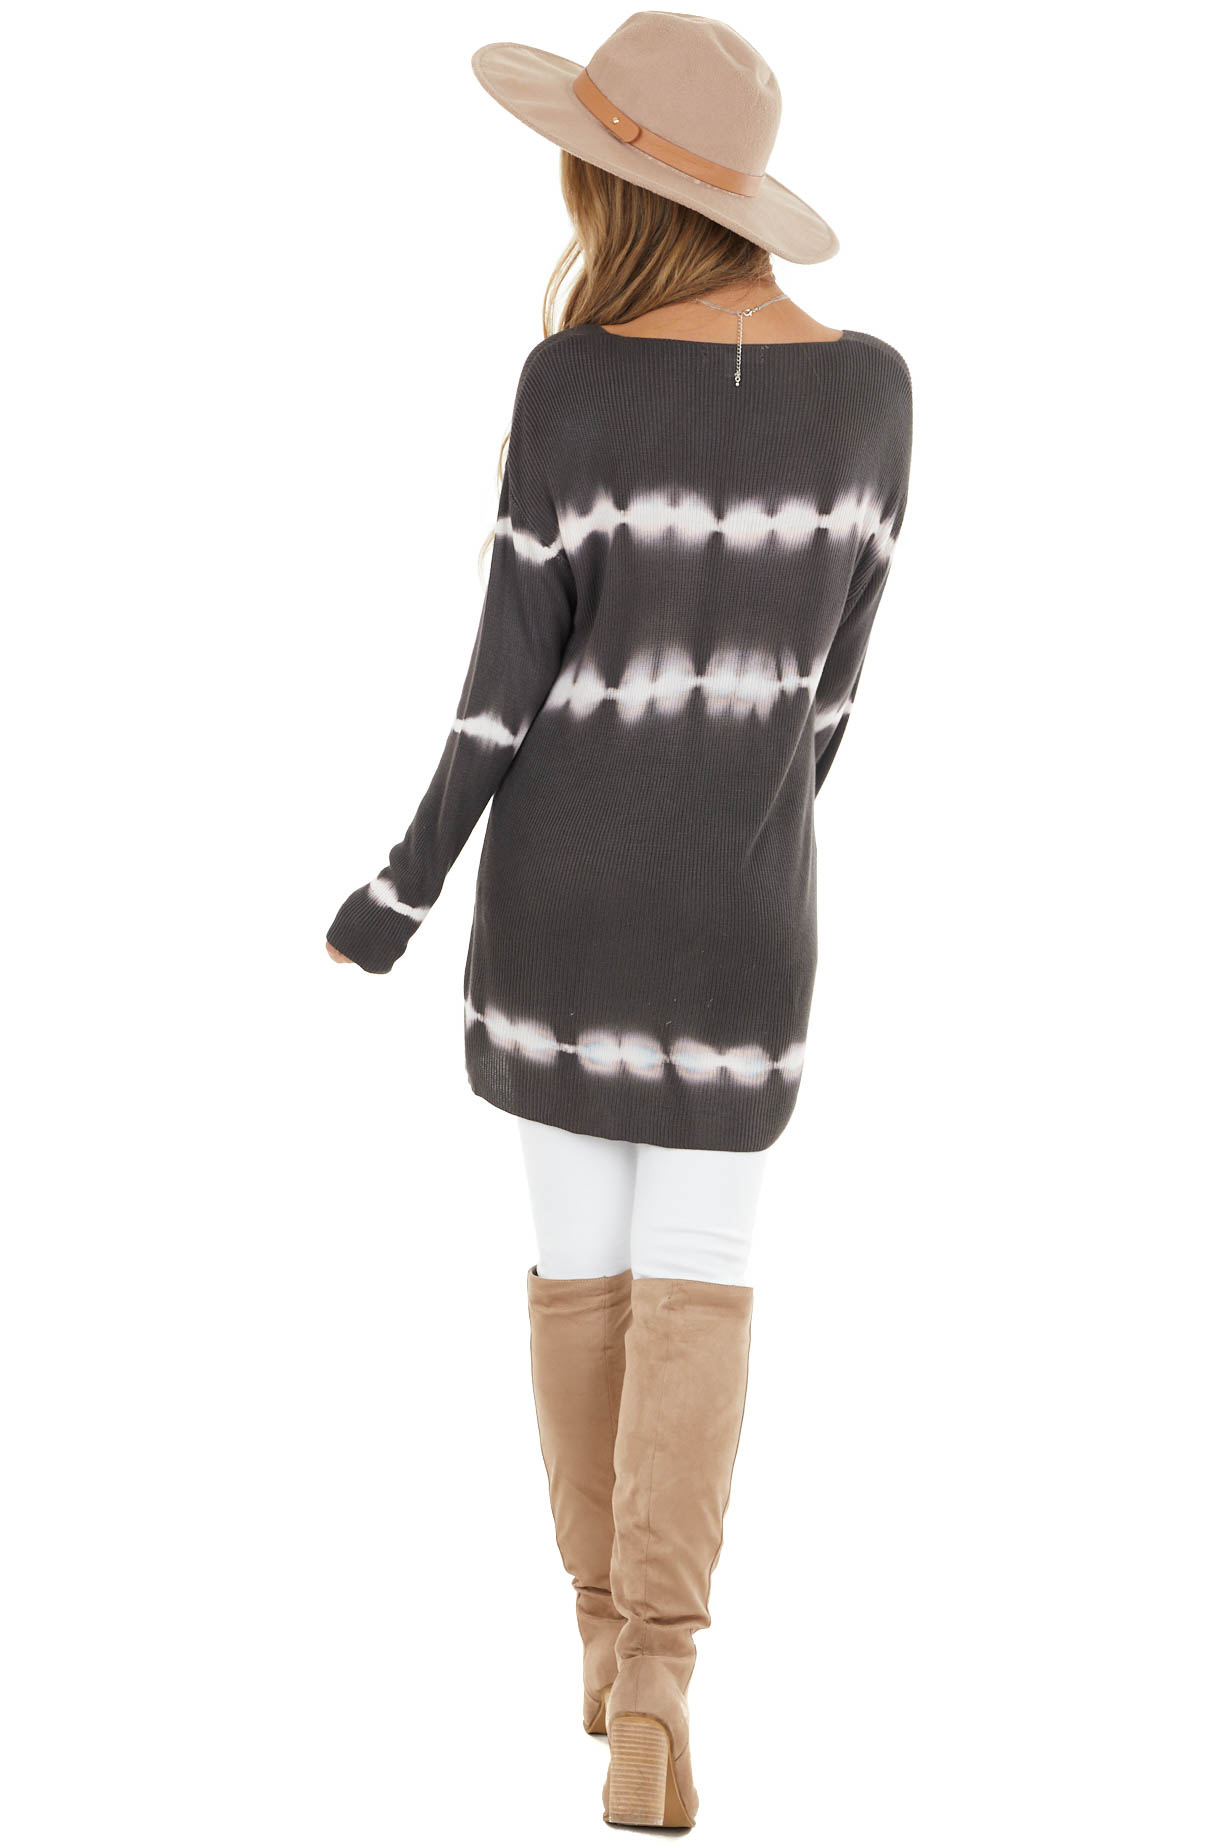 Charcoal Striped Tie Dye Ribbed Knit Top with Long Sleeves